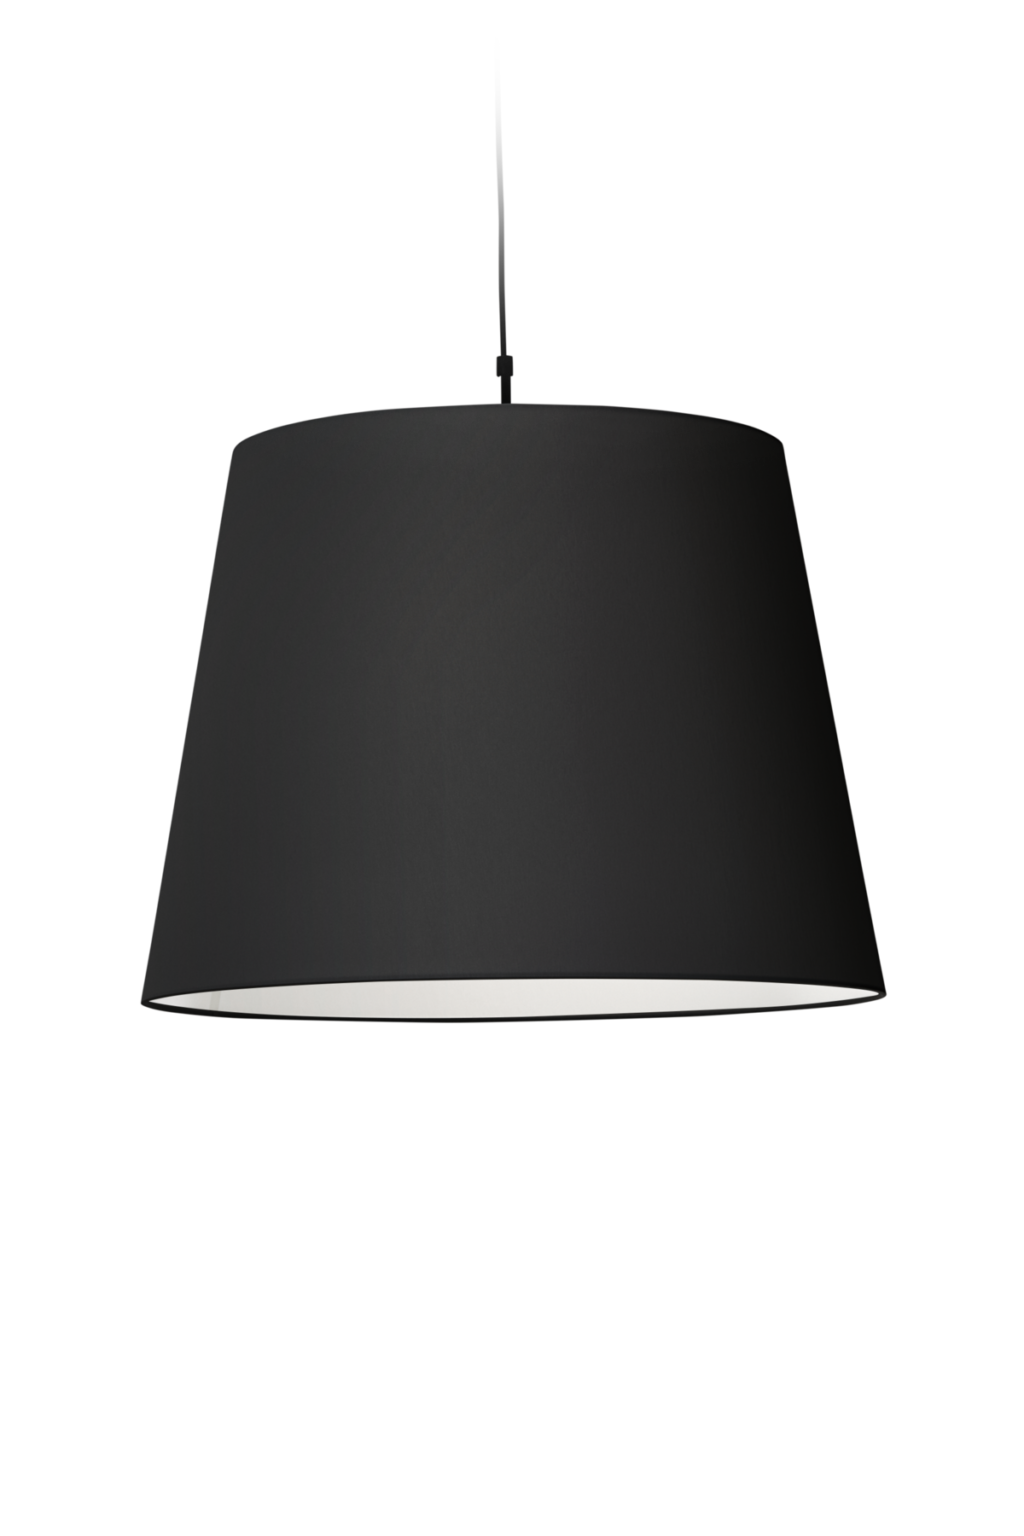 https://desidea.hu/wp-content/uploads/fly-images/160133/moooi-hang-fuggesztett-lampa2-1024x0.png